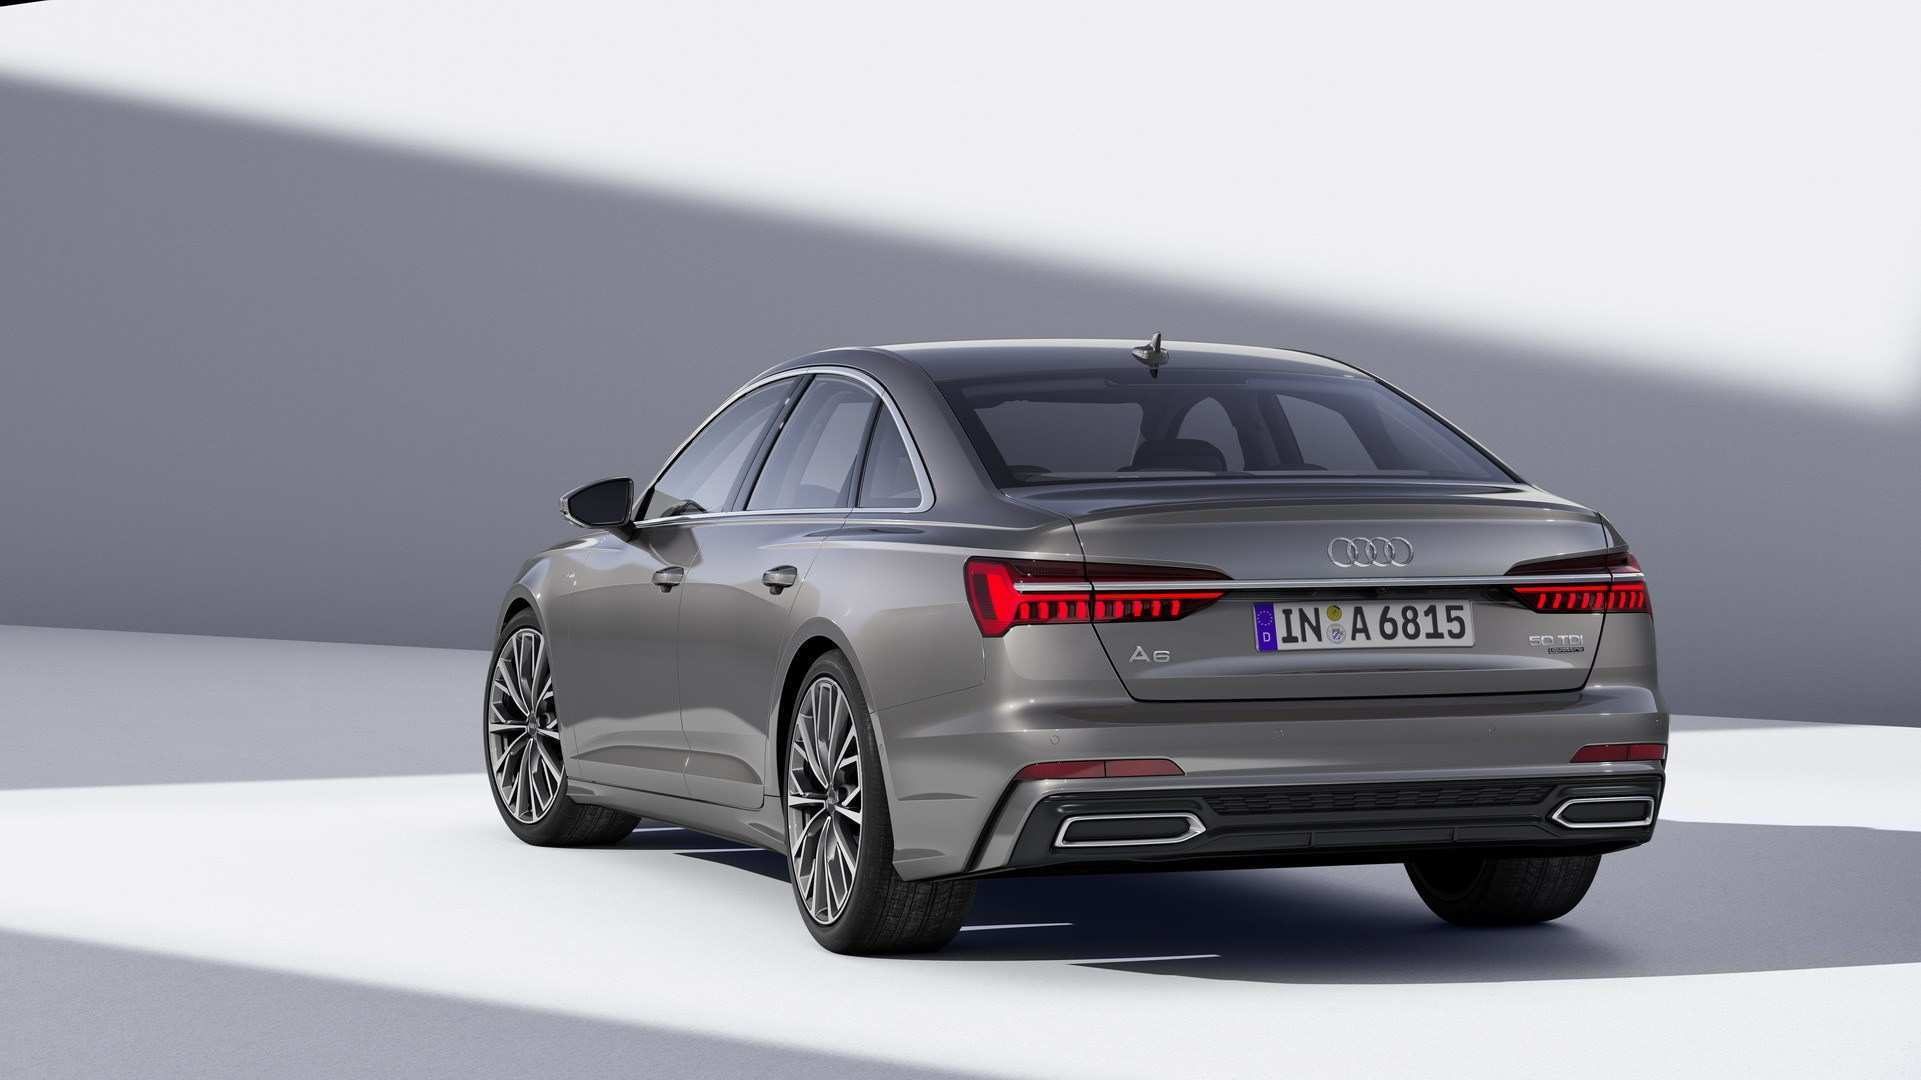 72 The 2019 Audi A6 Specs Model with 2019 Audi A6 Specs